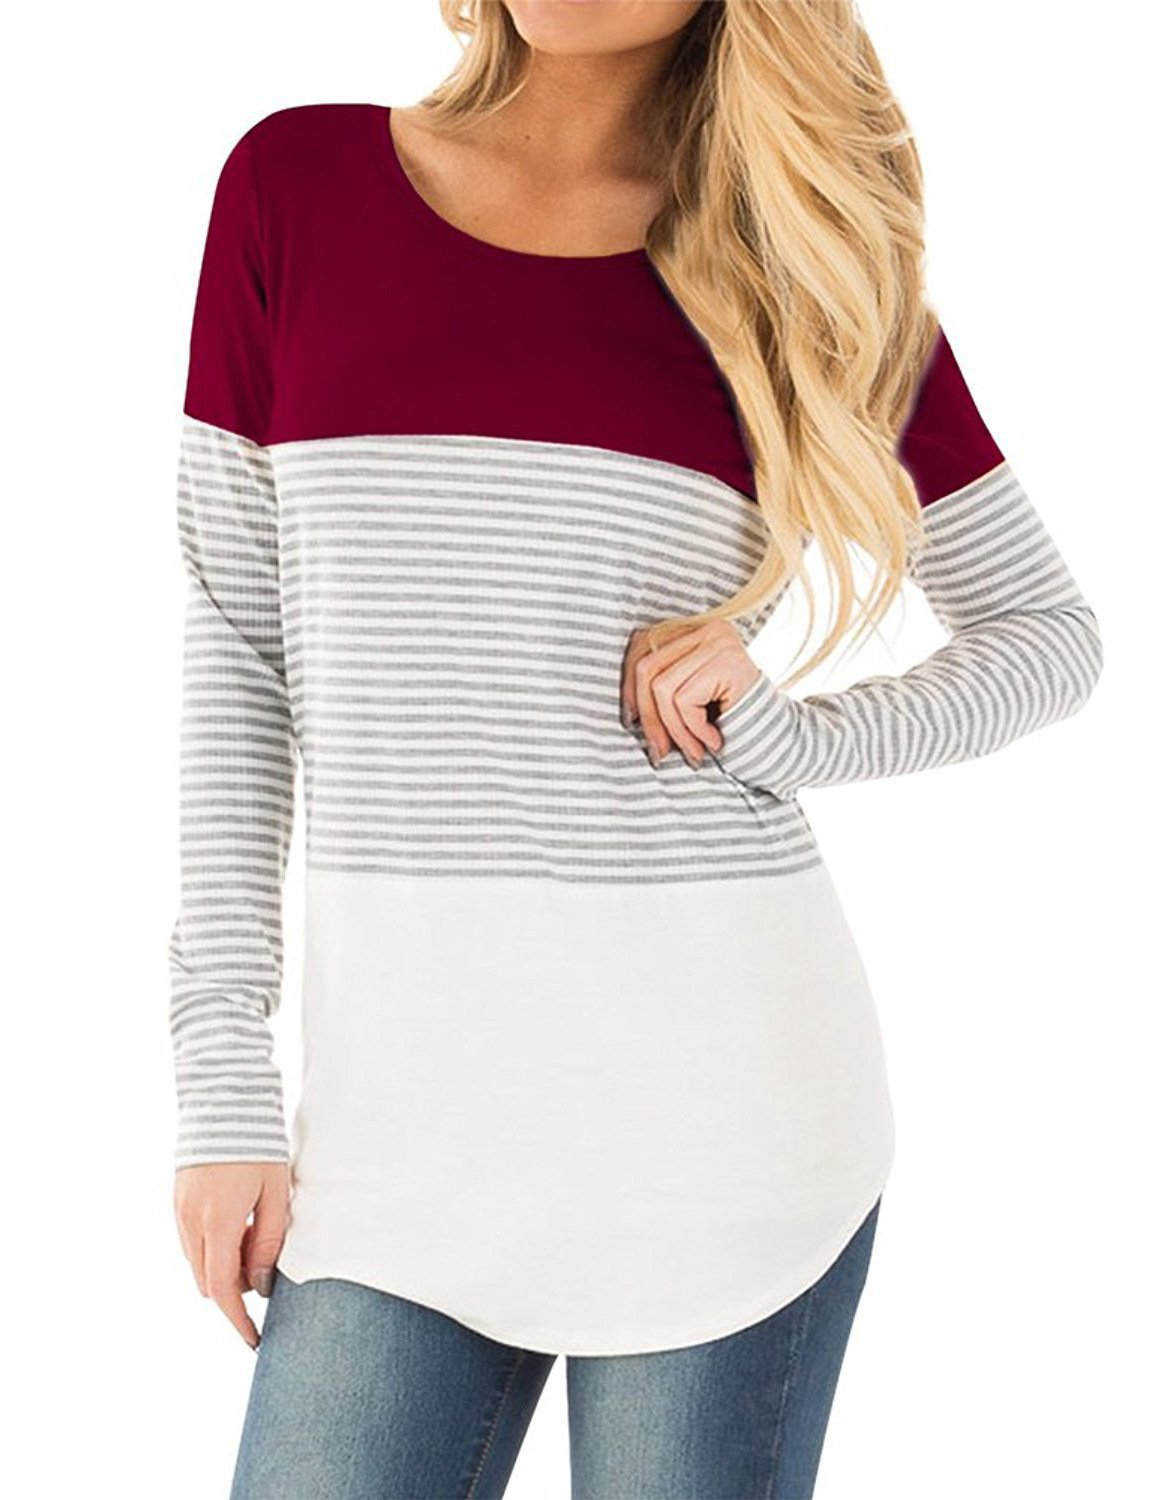 Naier Womens Tee Shirts Long Sleeve Color Splicing Top (Wine Red,L)